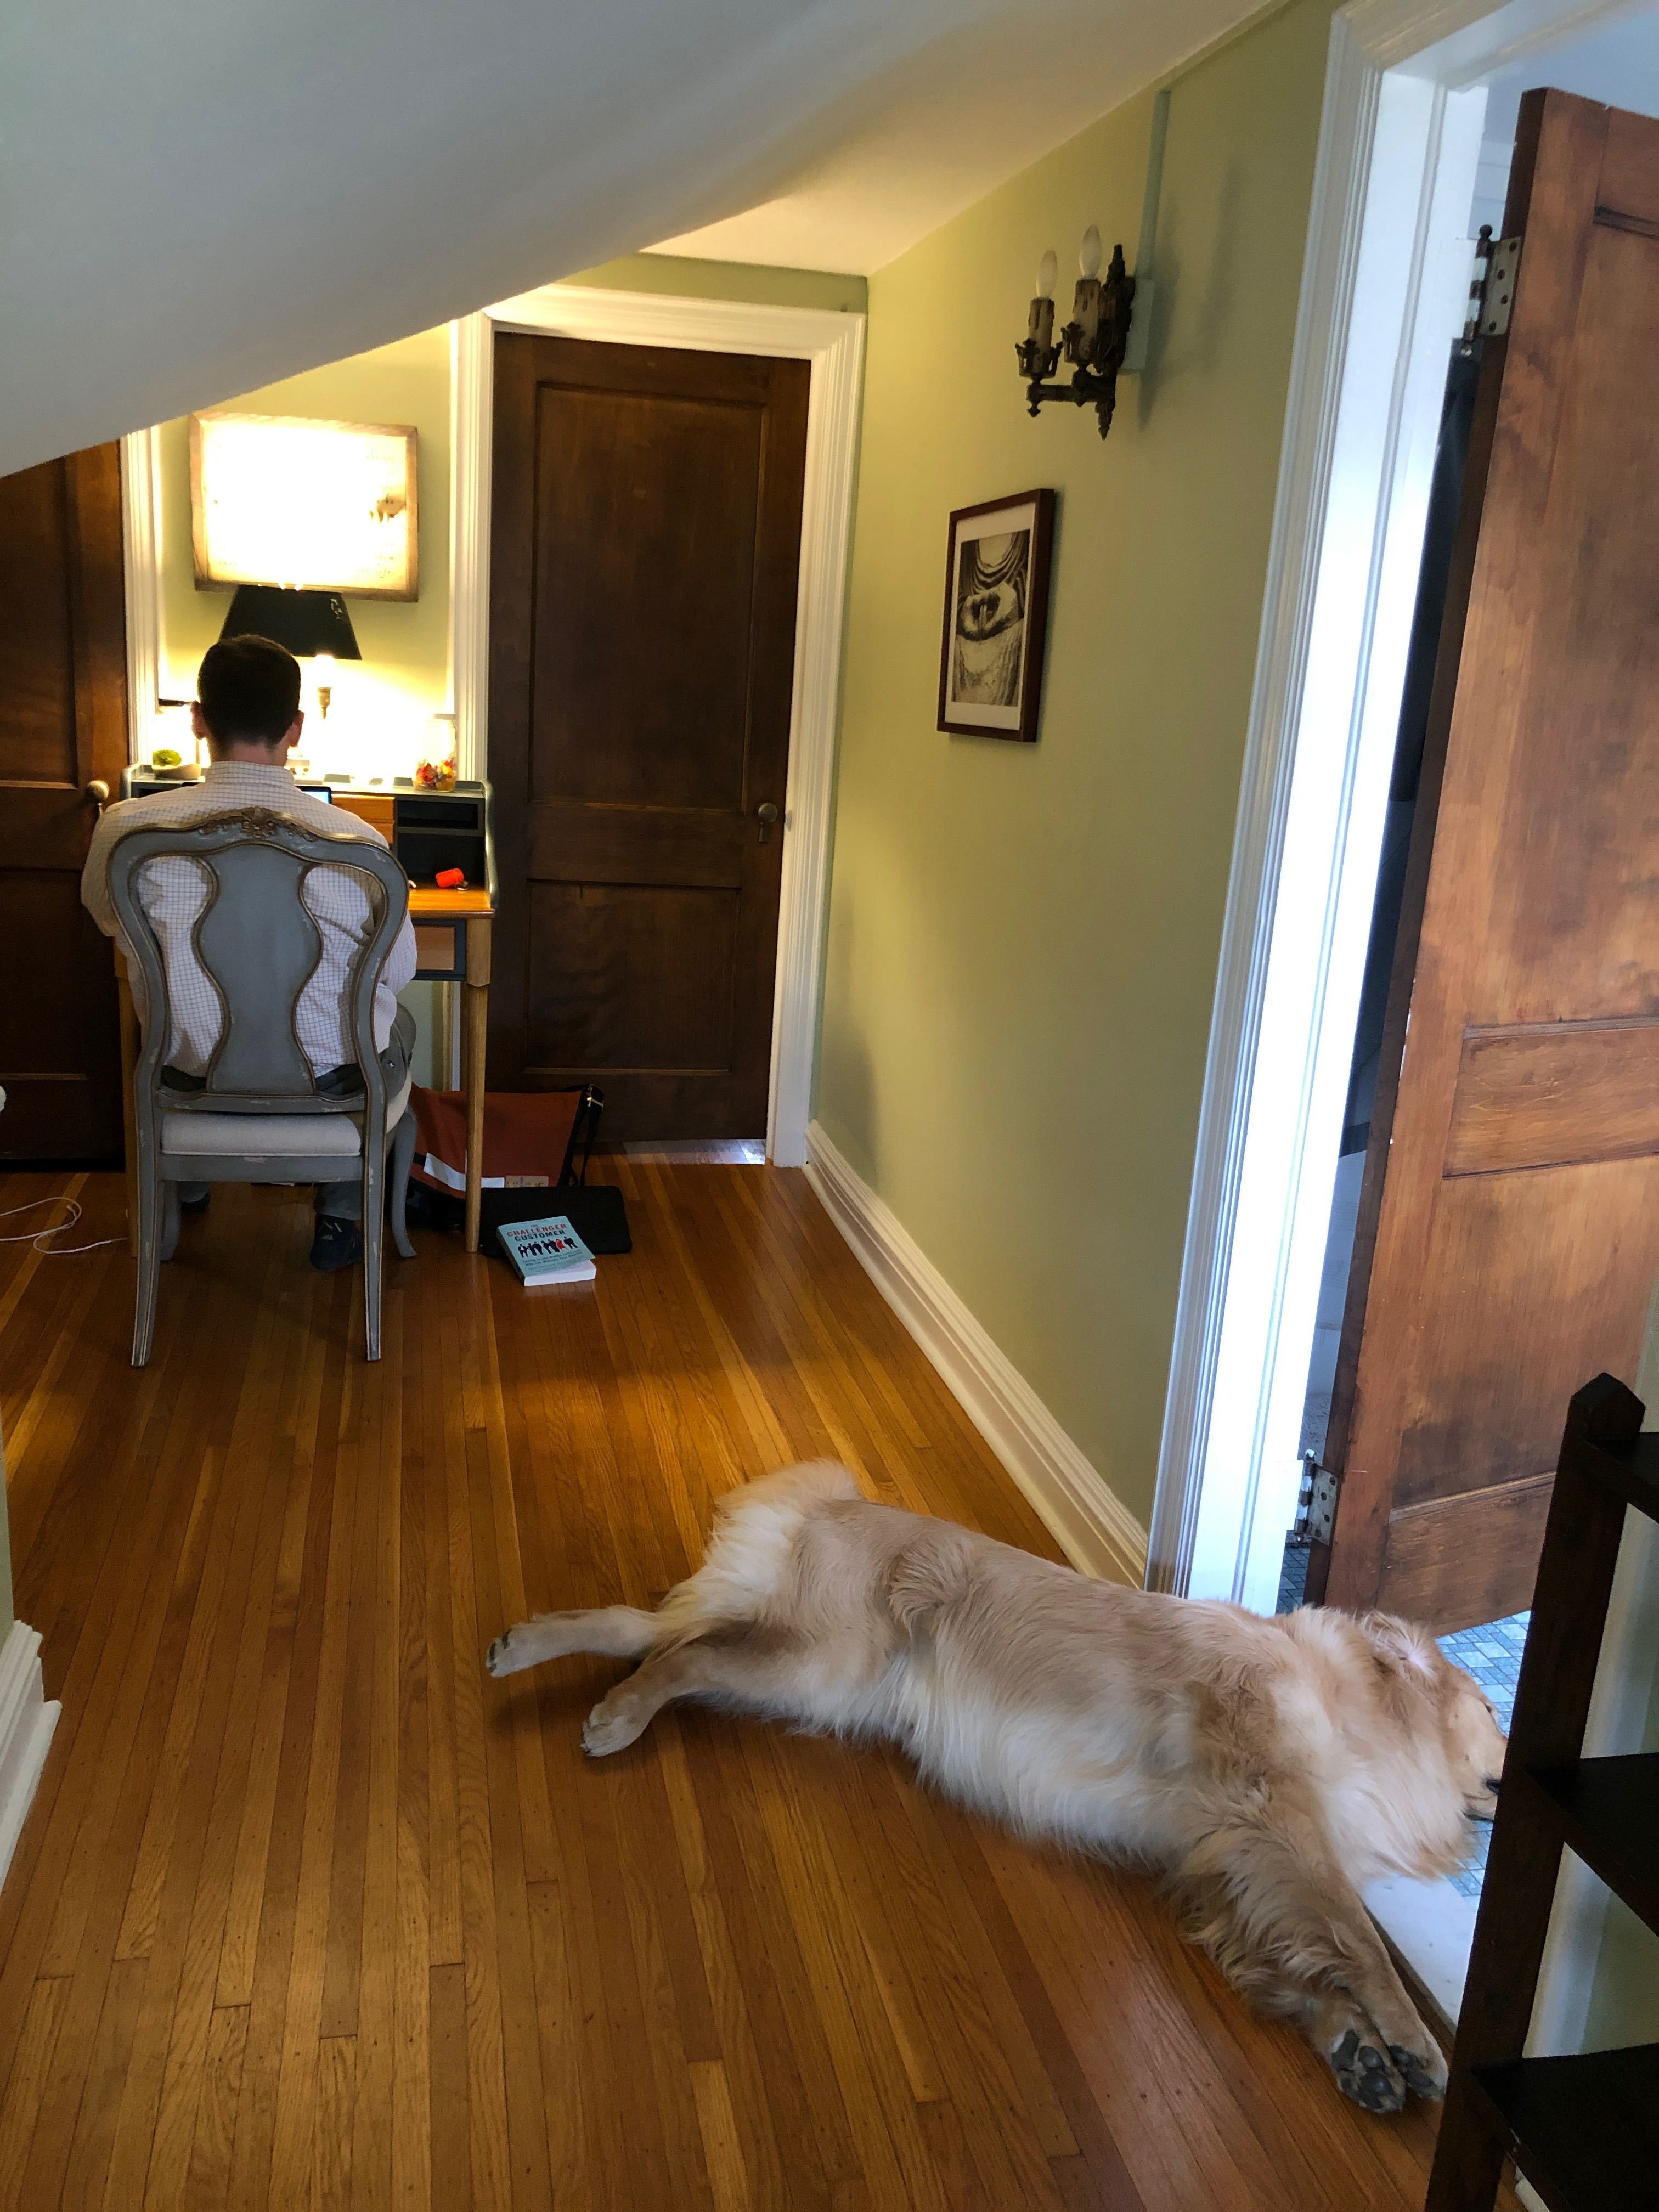 home office in a hallway with a dog on the floor